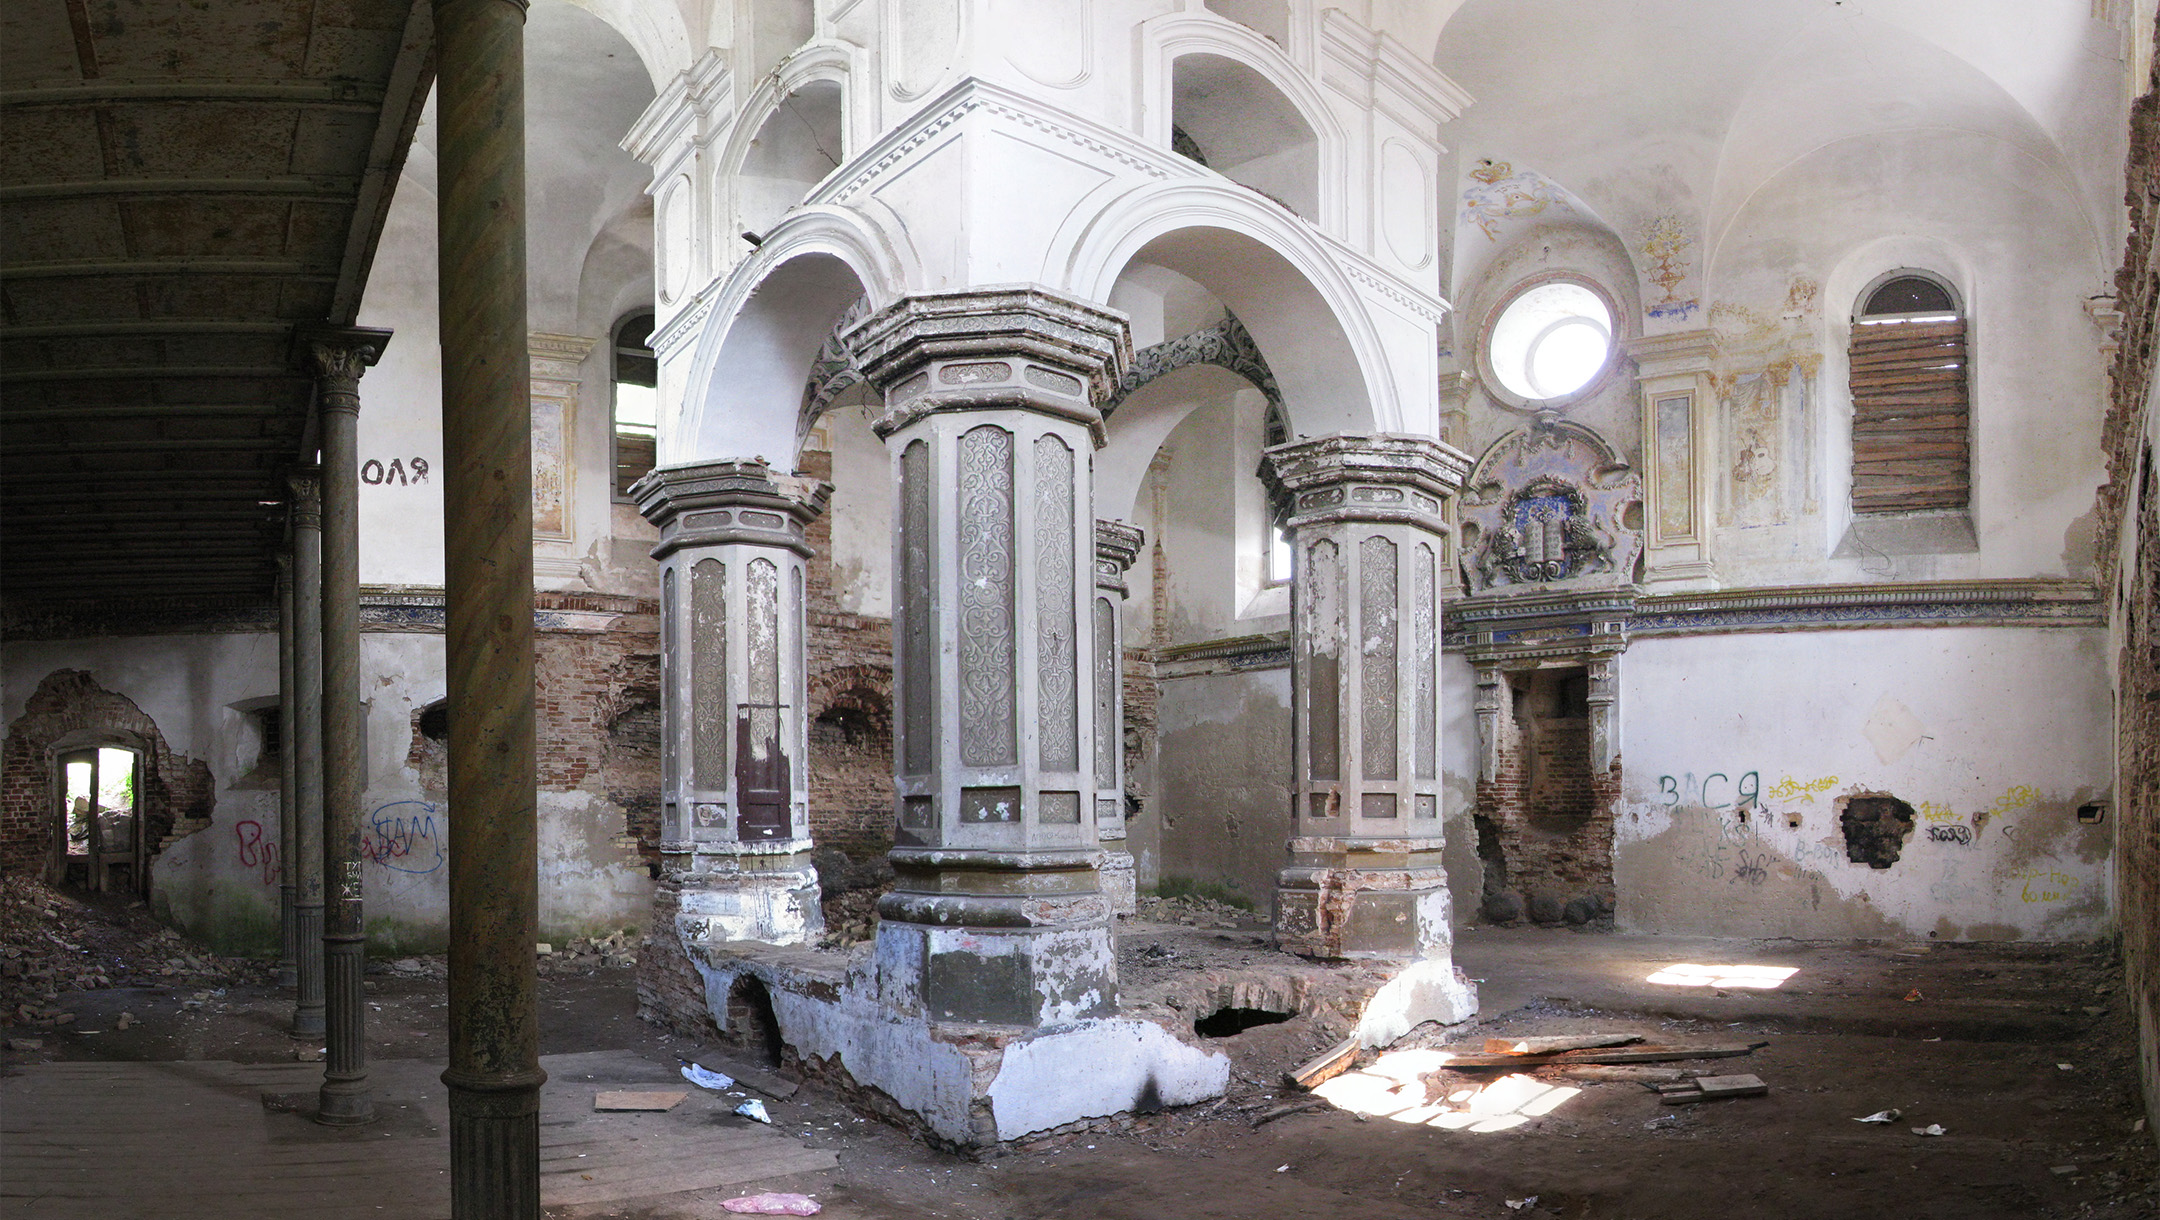 In Eastern Europe, historic synagogues are sold for the price of a used car